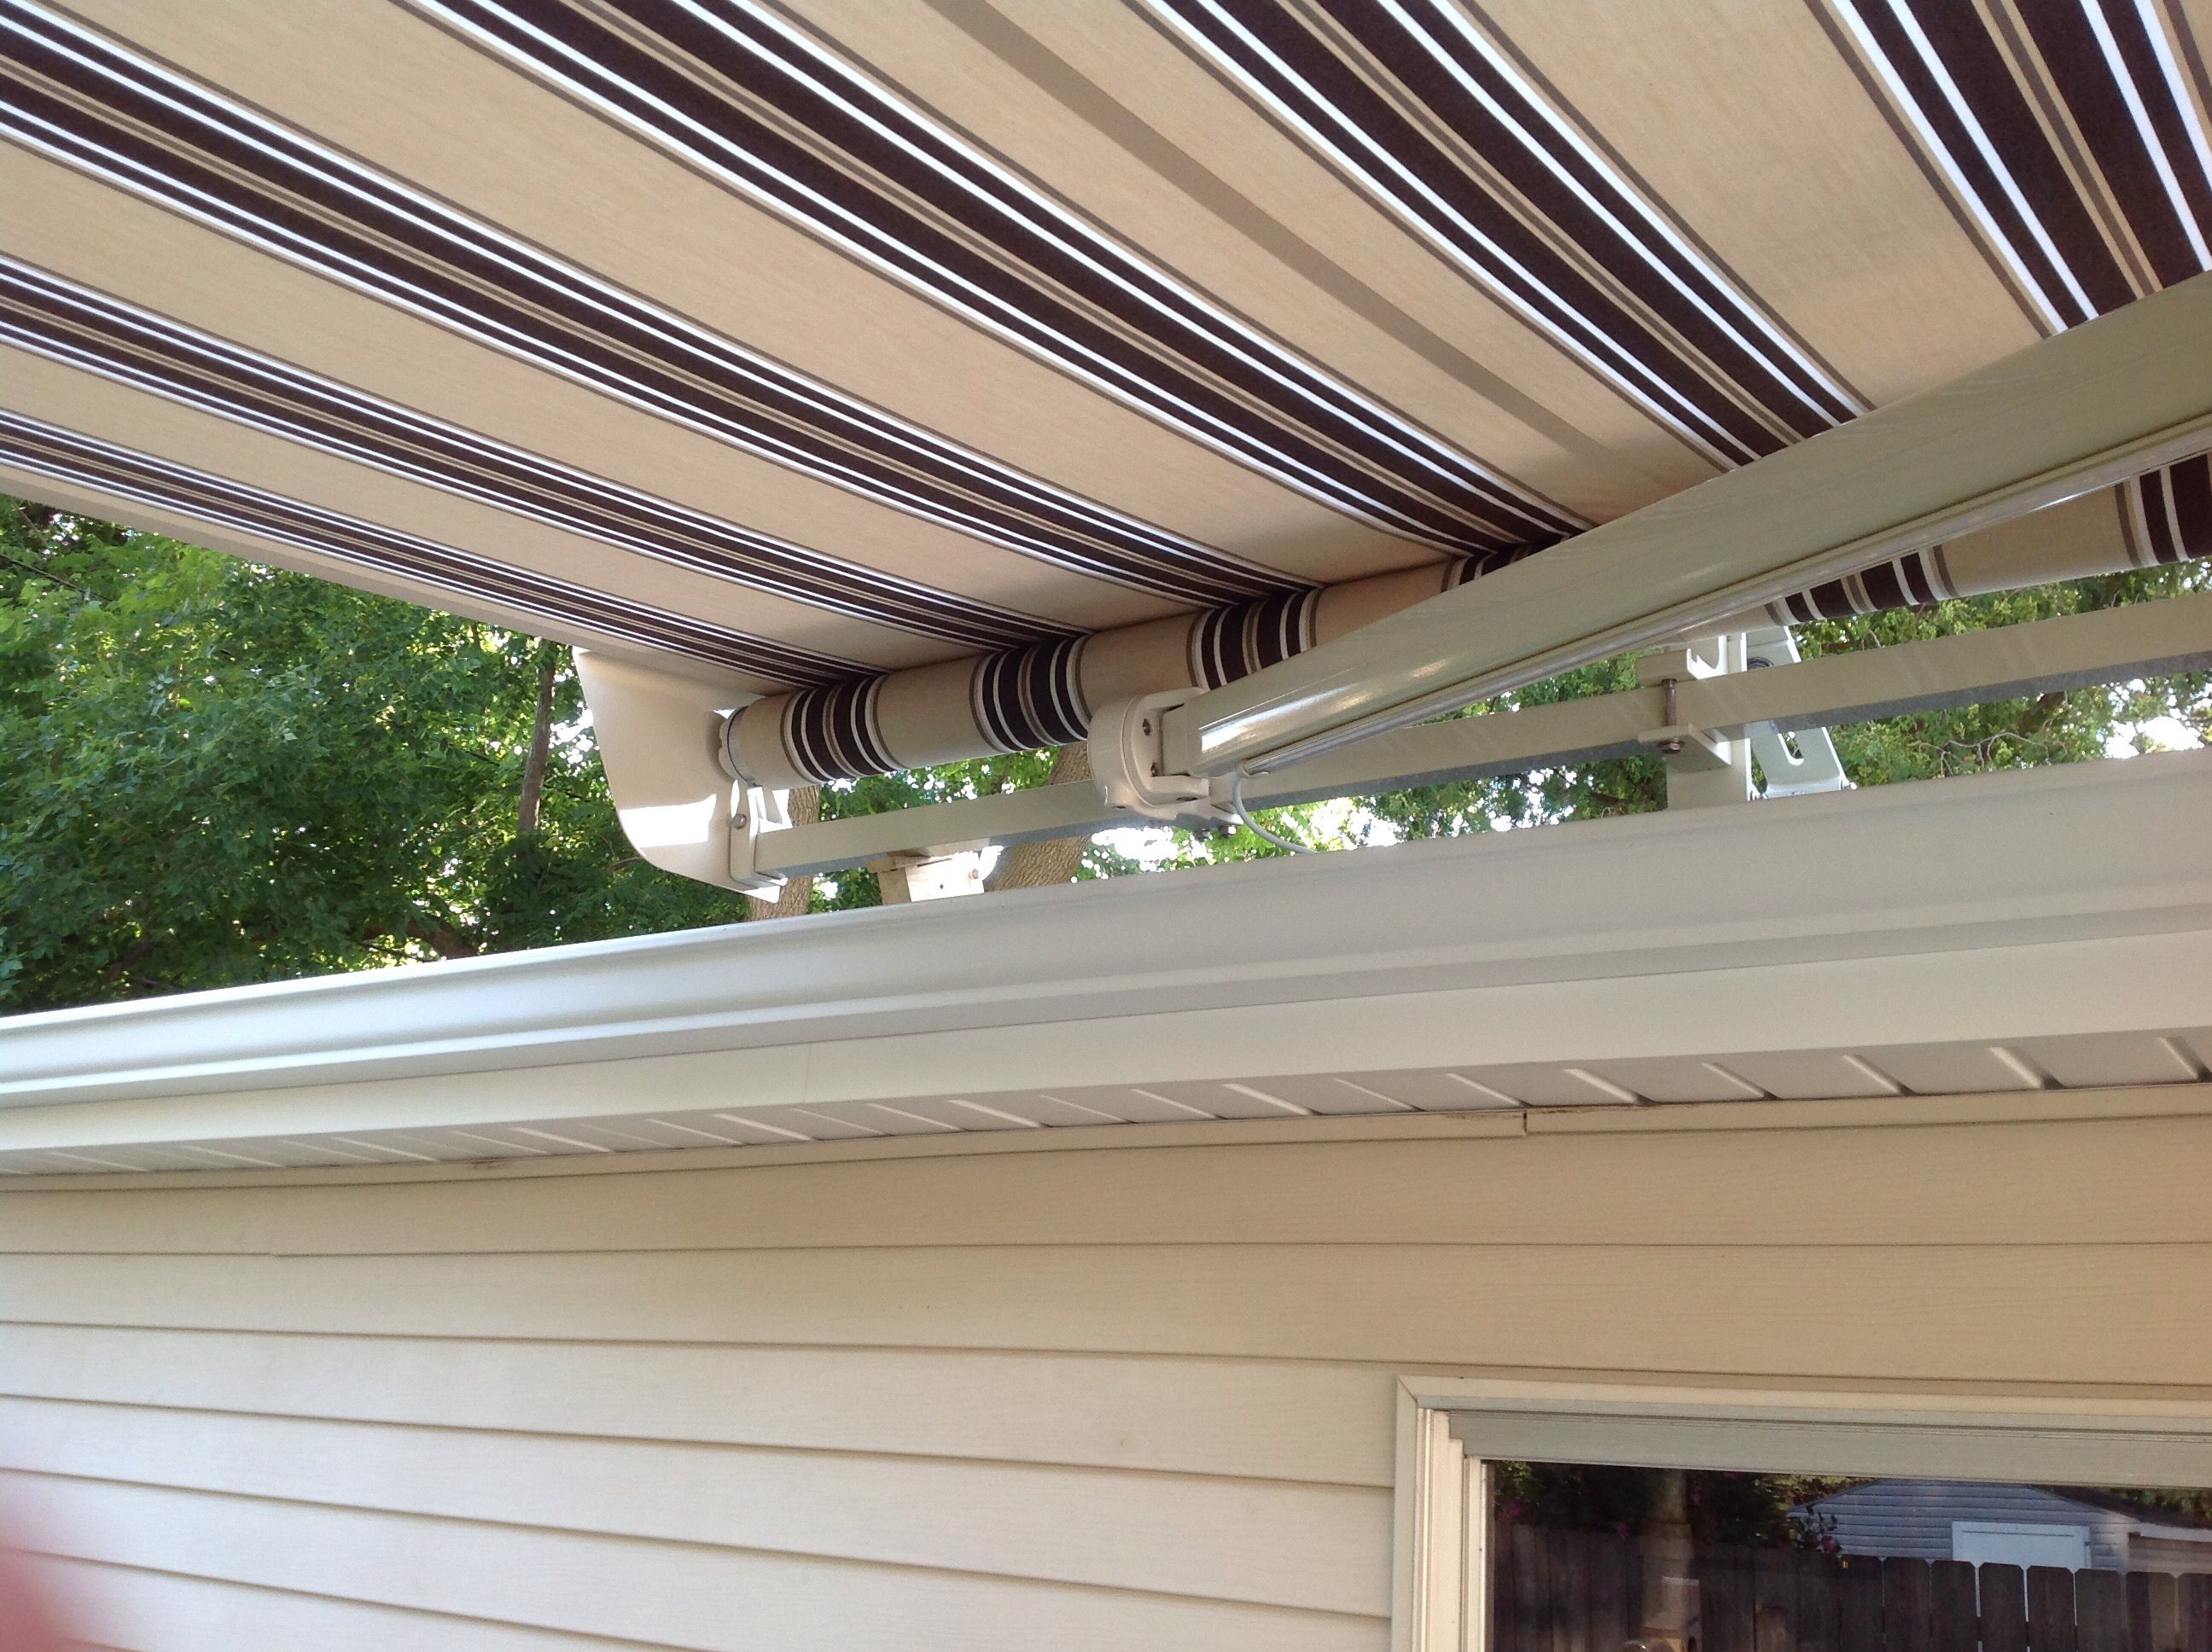 Top 466 Reviews And Complaints About Sunsetter Awnings